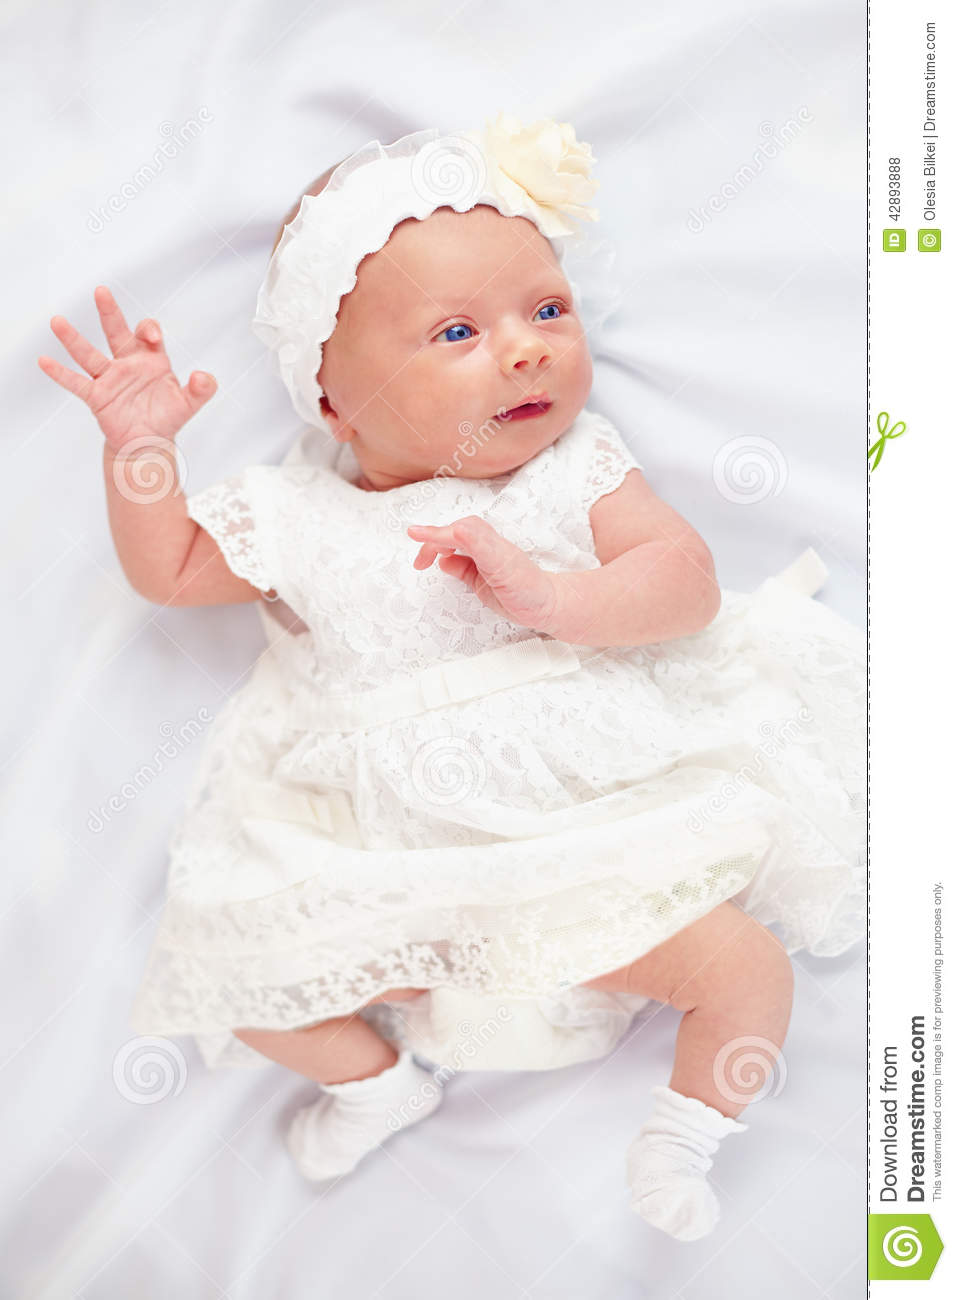 Find great deals on eBay for newborn white baby gown. Shop with confidence.